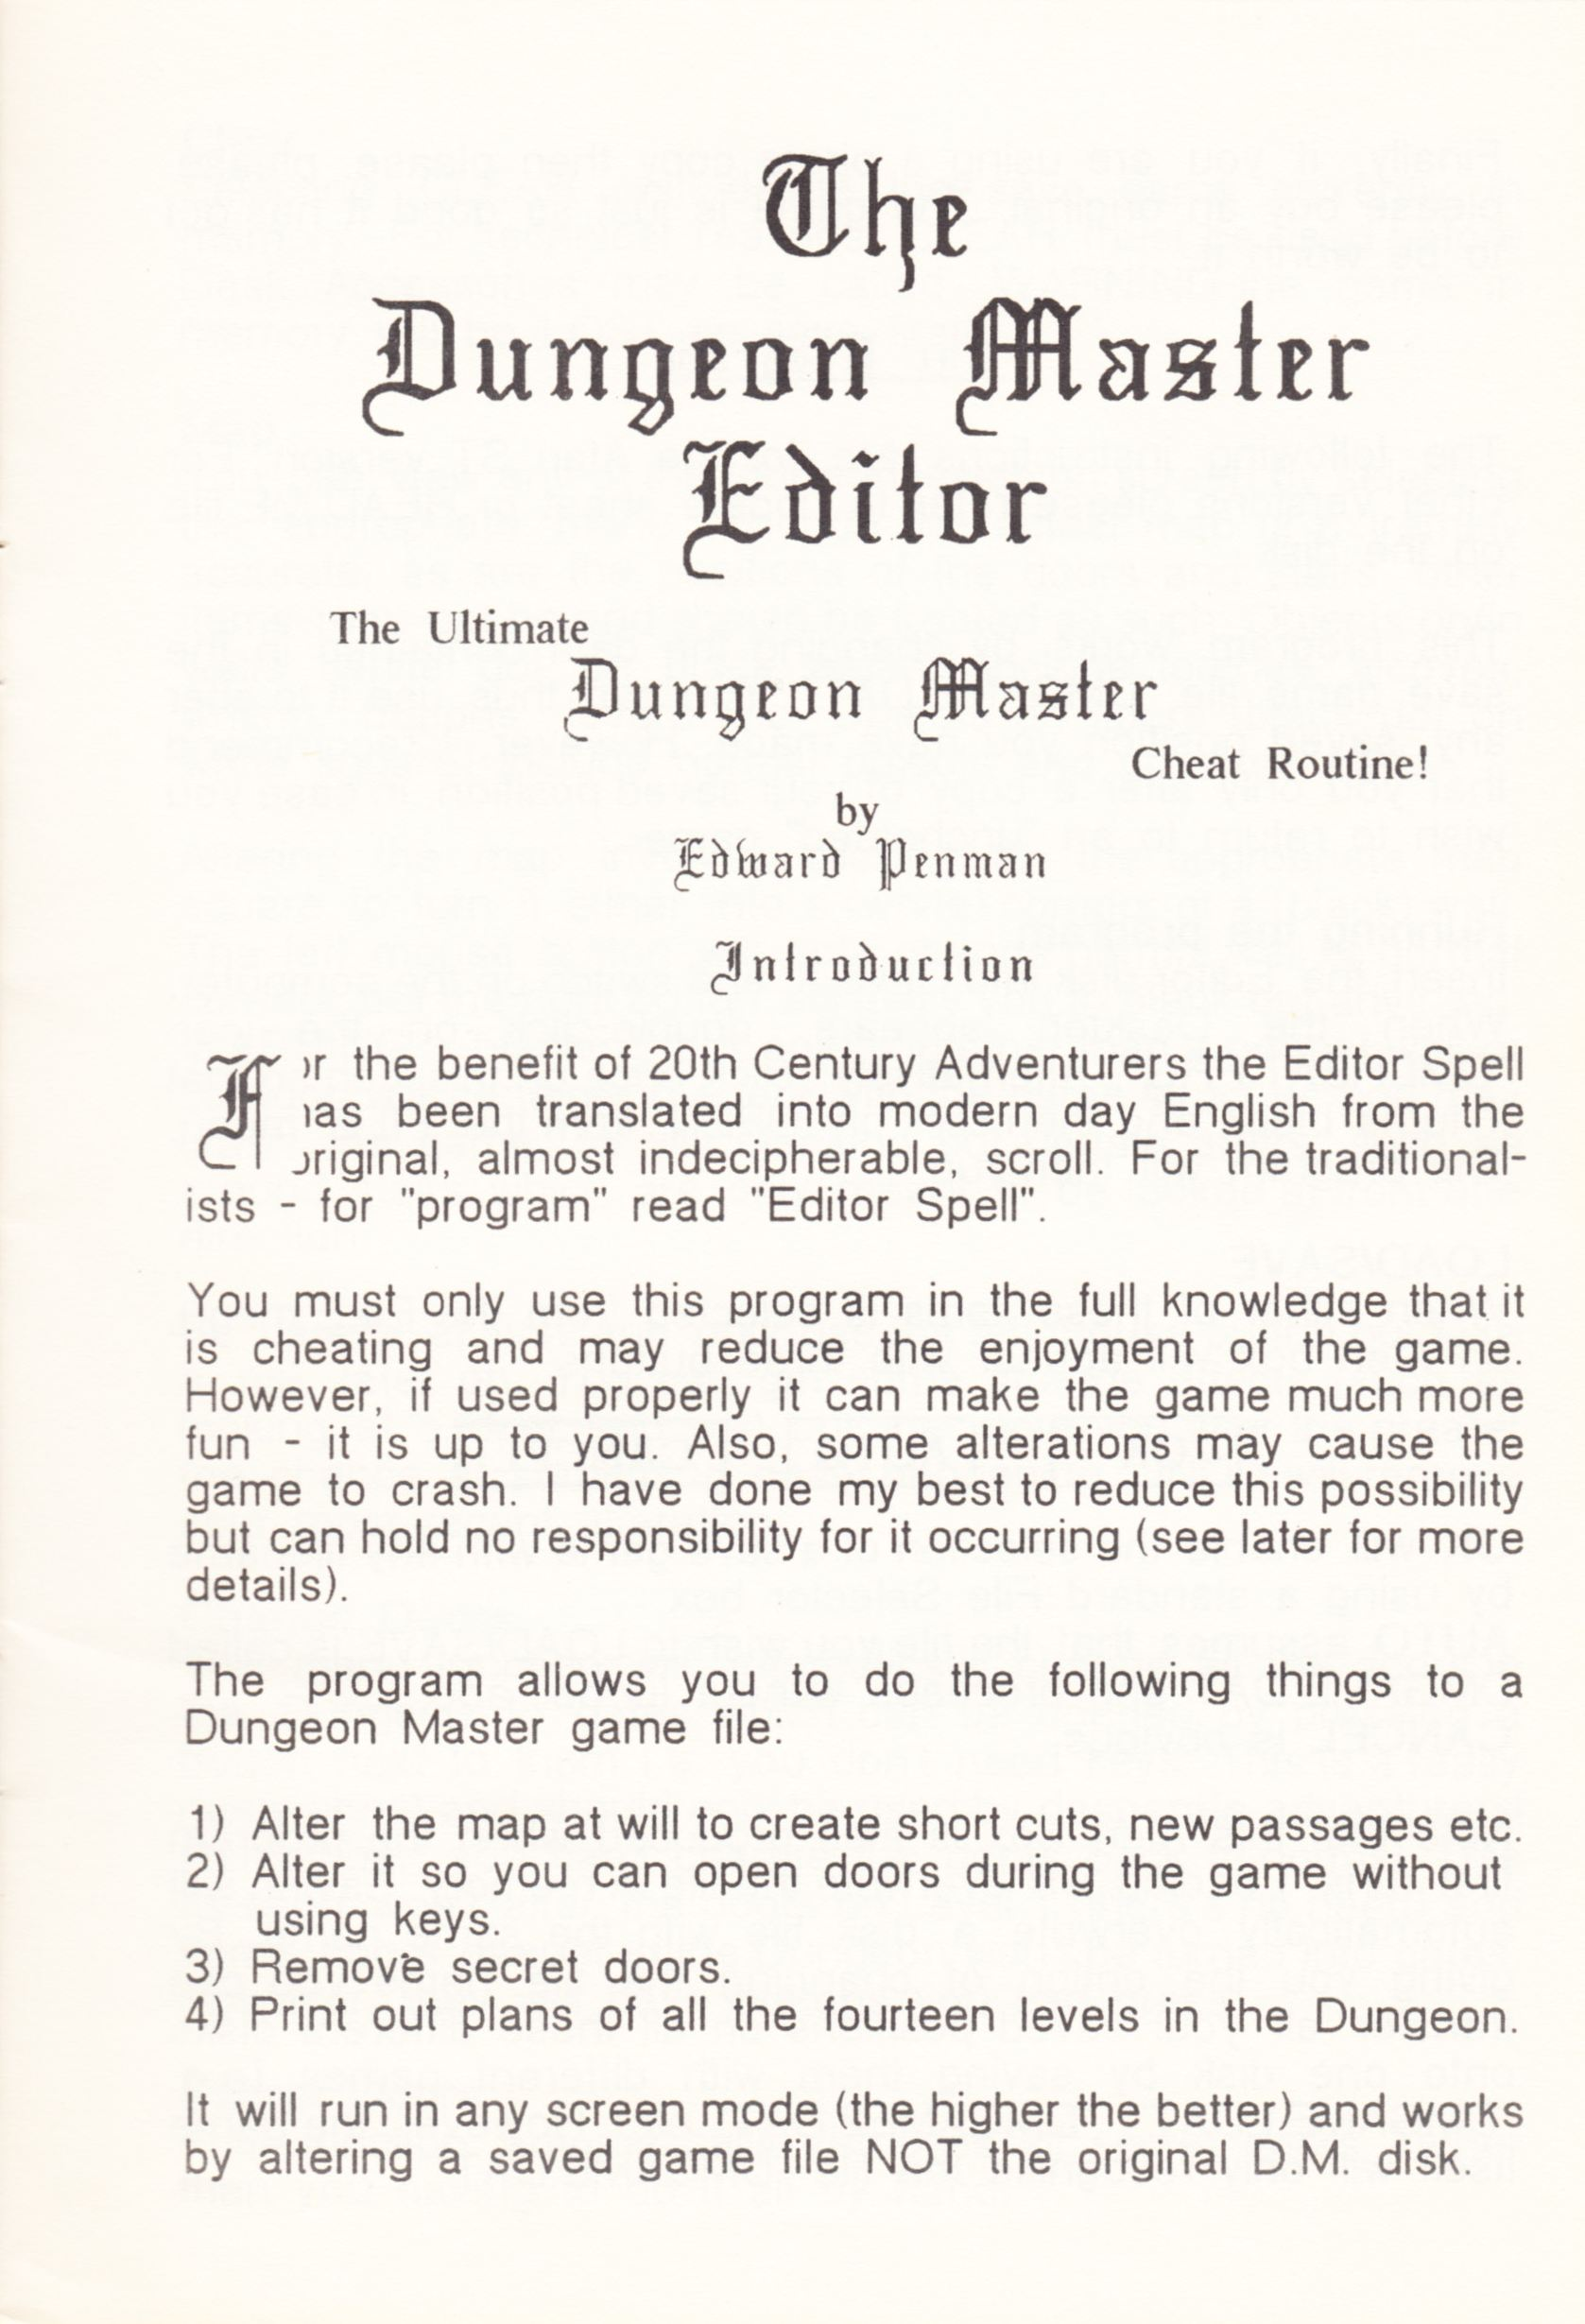 Tool - The Dungeon Master Editor - UK - Amiga - Atari ST Manual - Page 019 - Scan